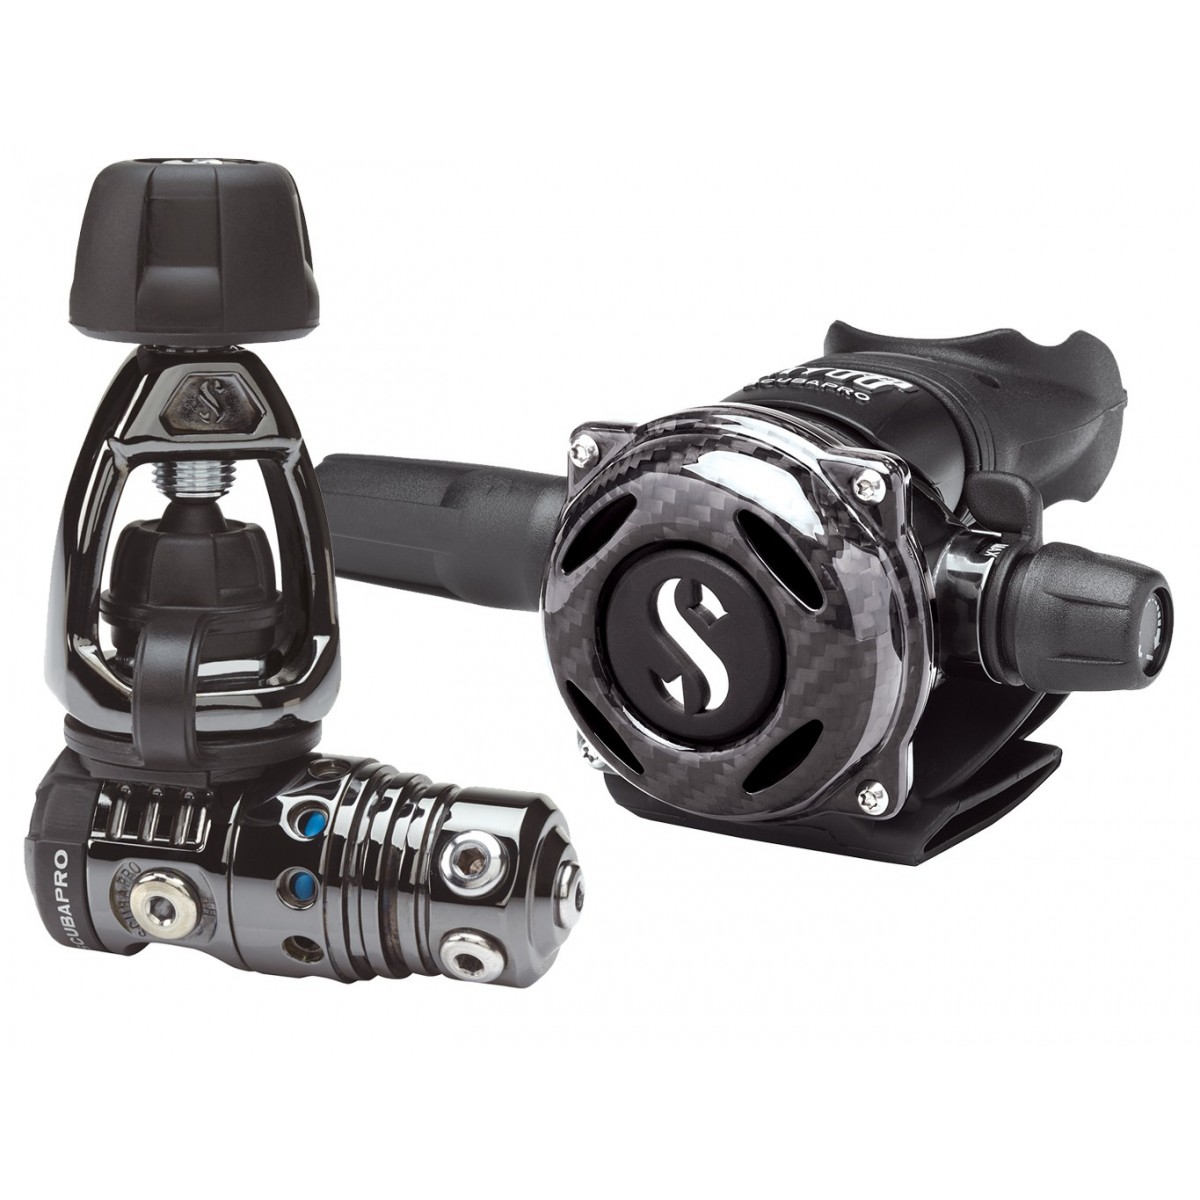 Scubapro MK25 EVO/A700 Carbon Black Tech Regulator - Yoke